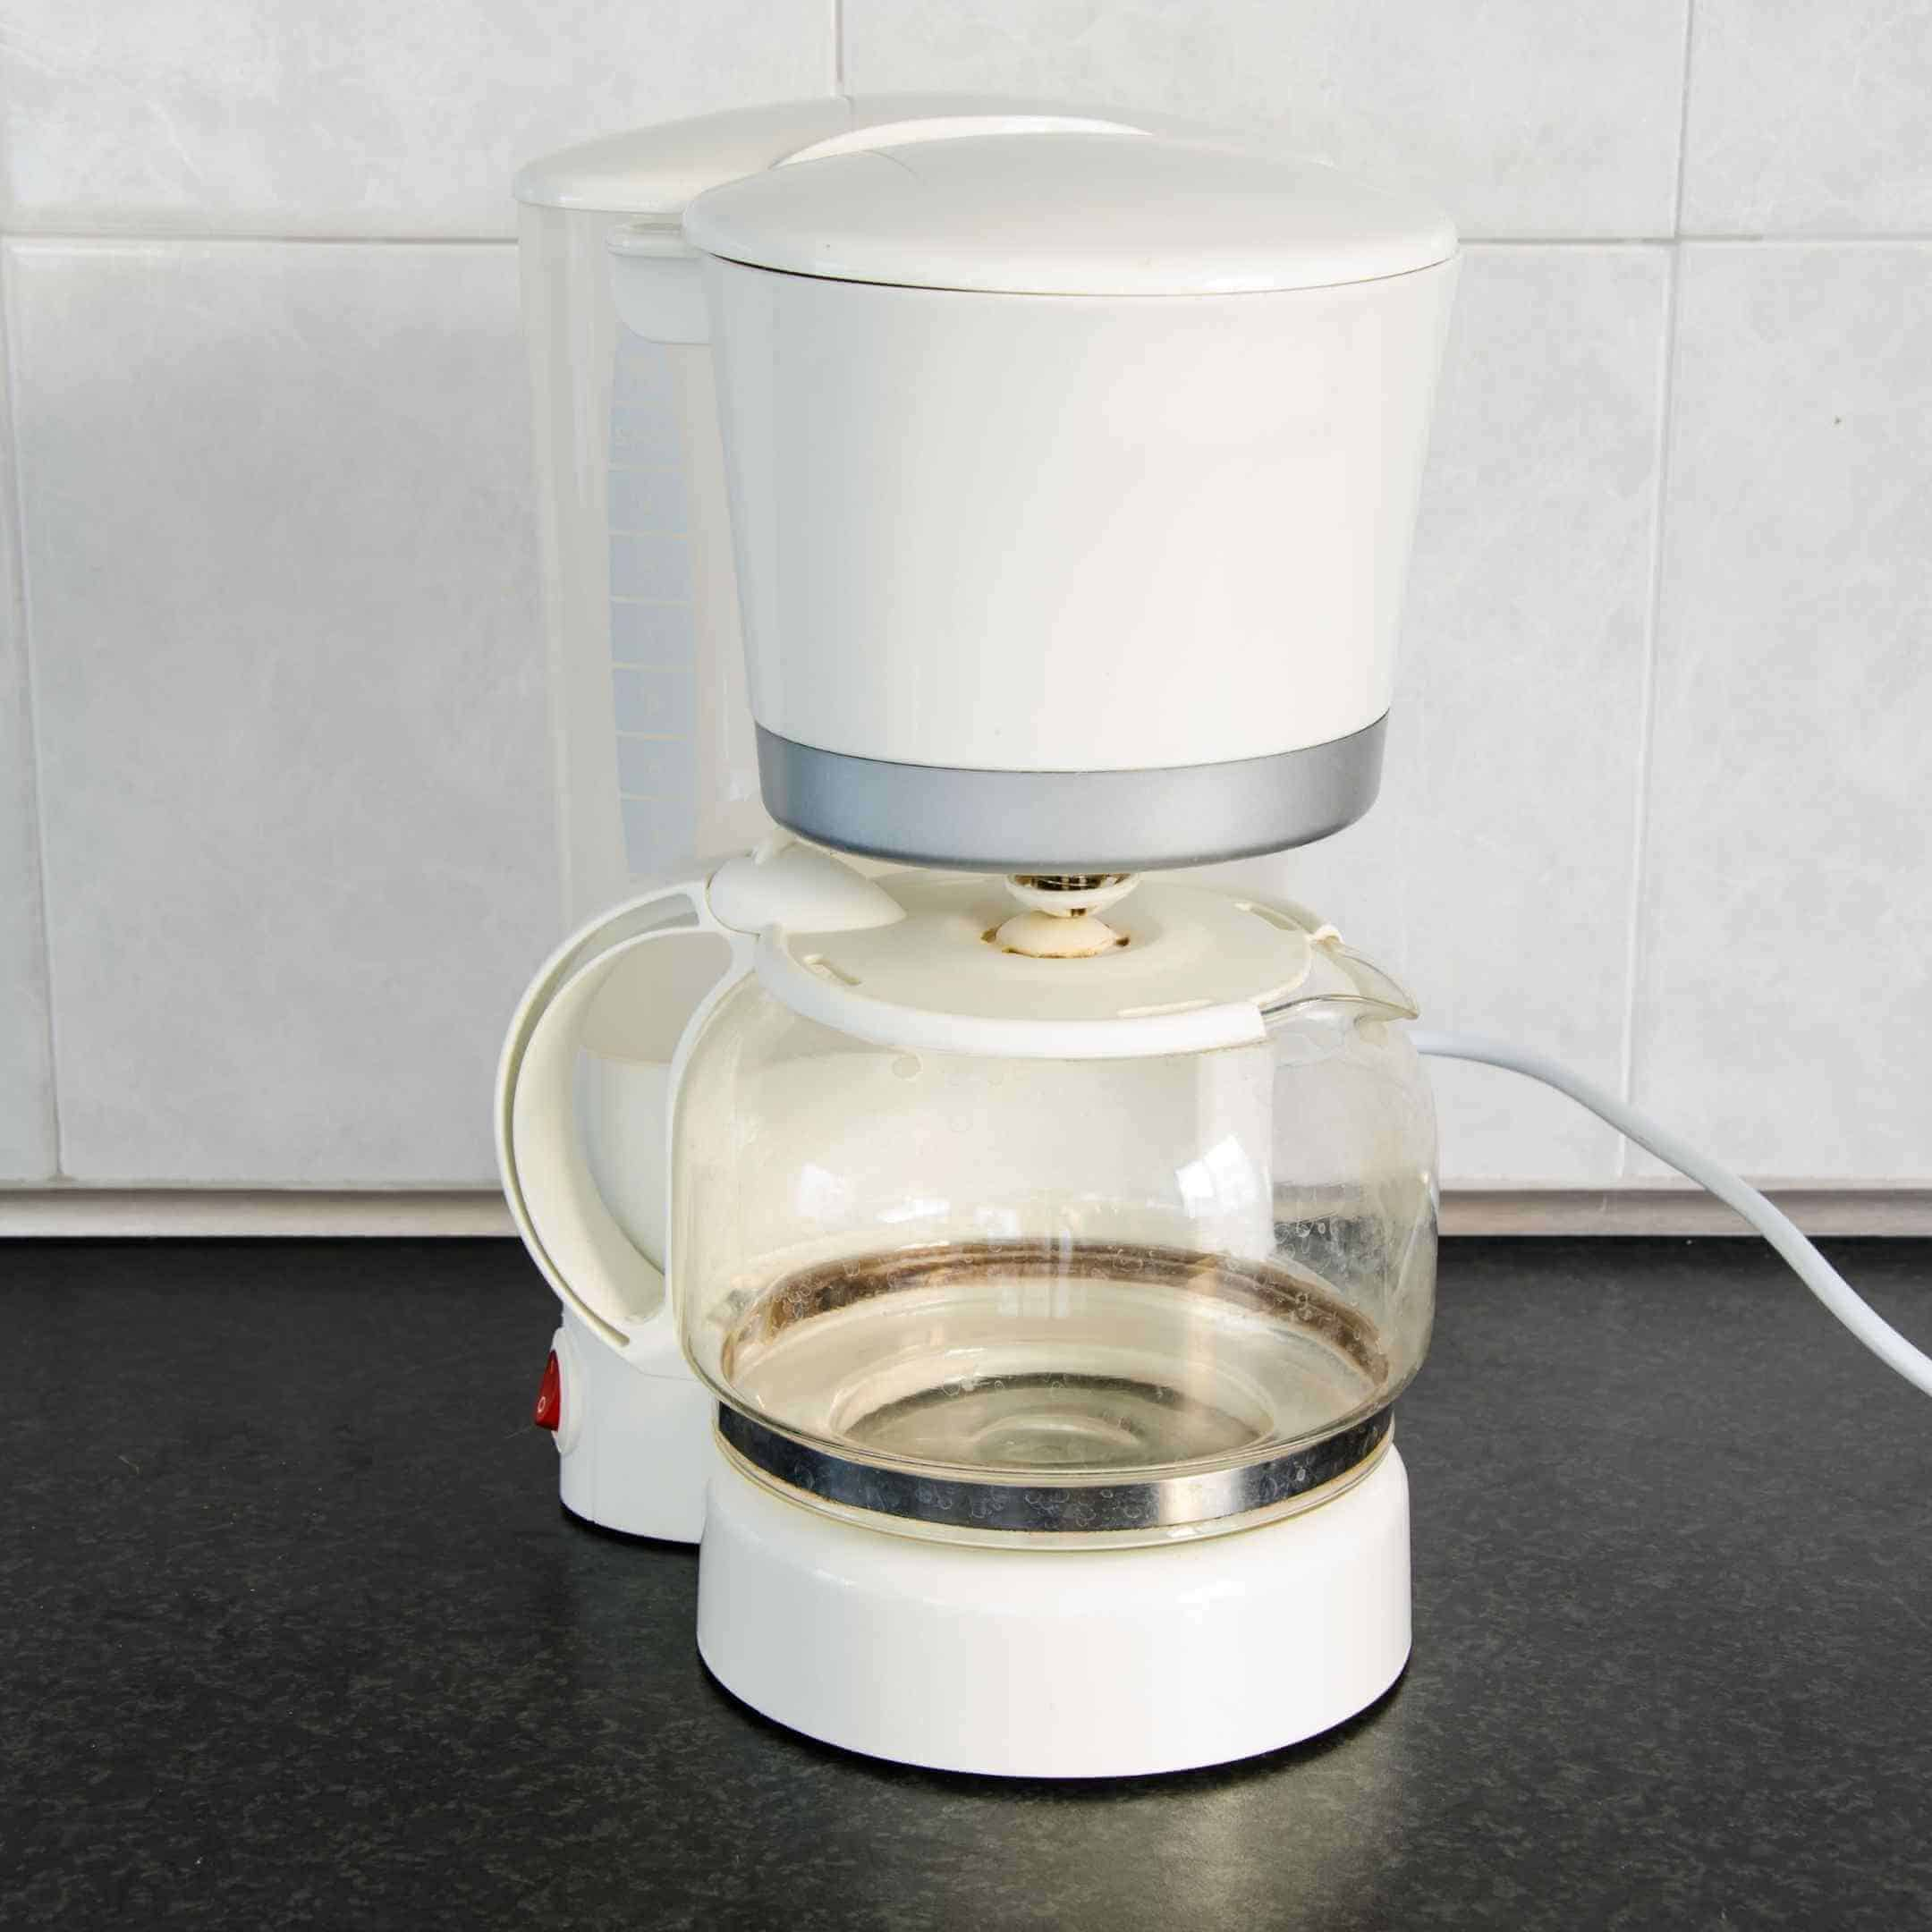 coffee maker with heating element